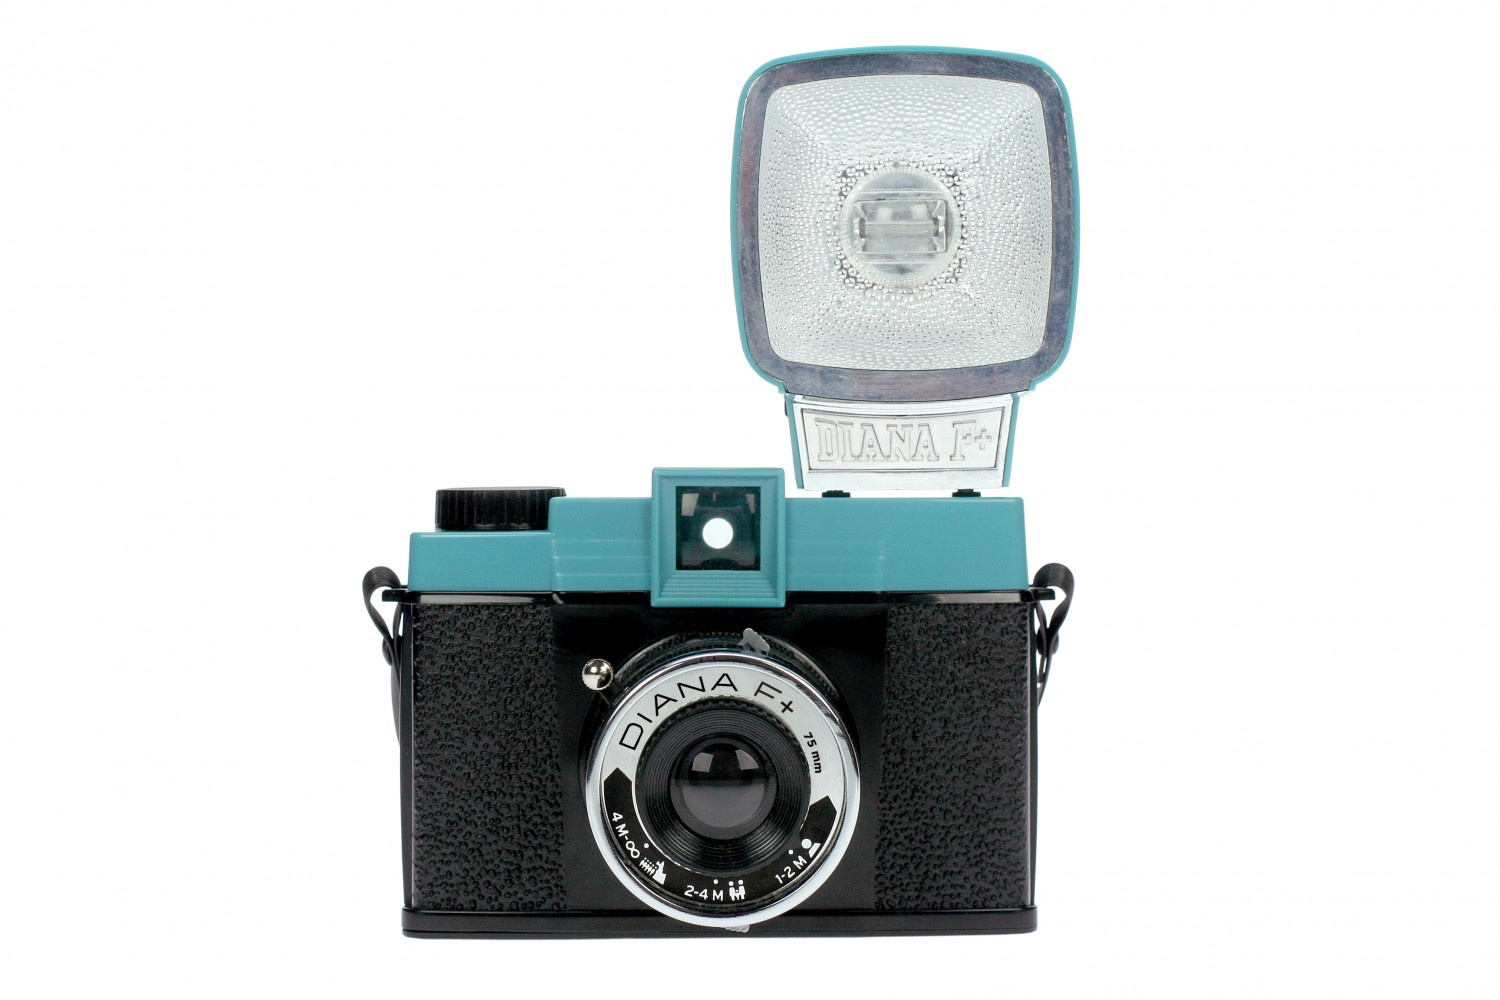 Diana F Camera And Flash